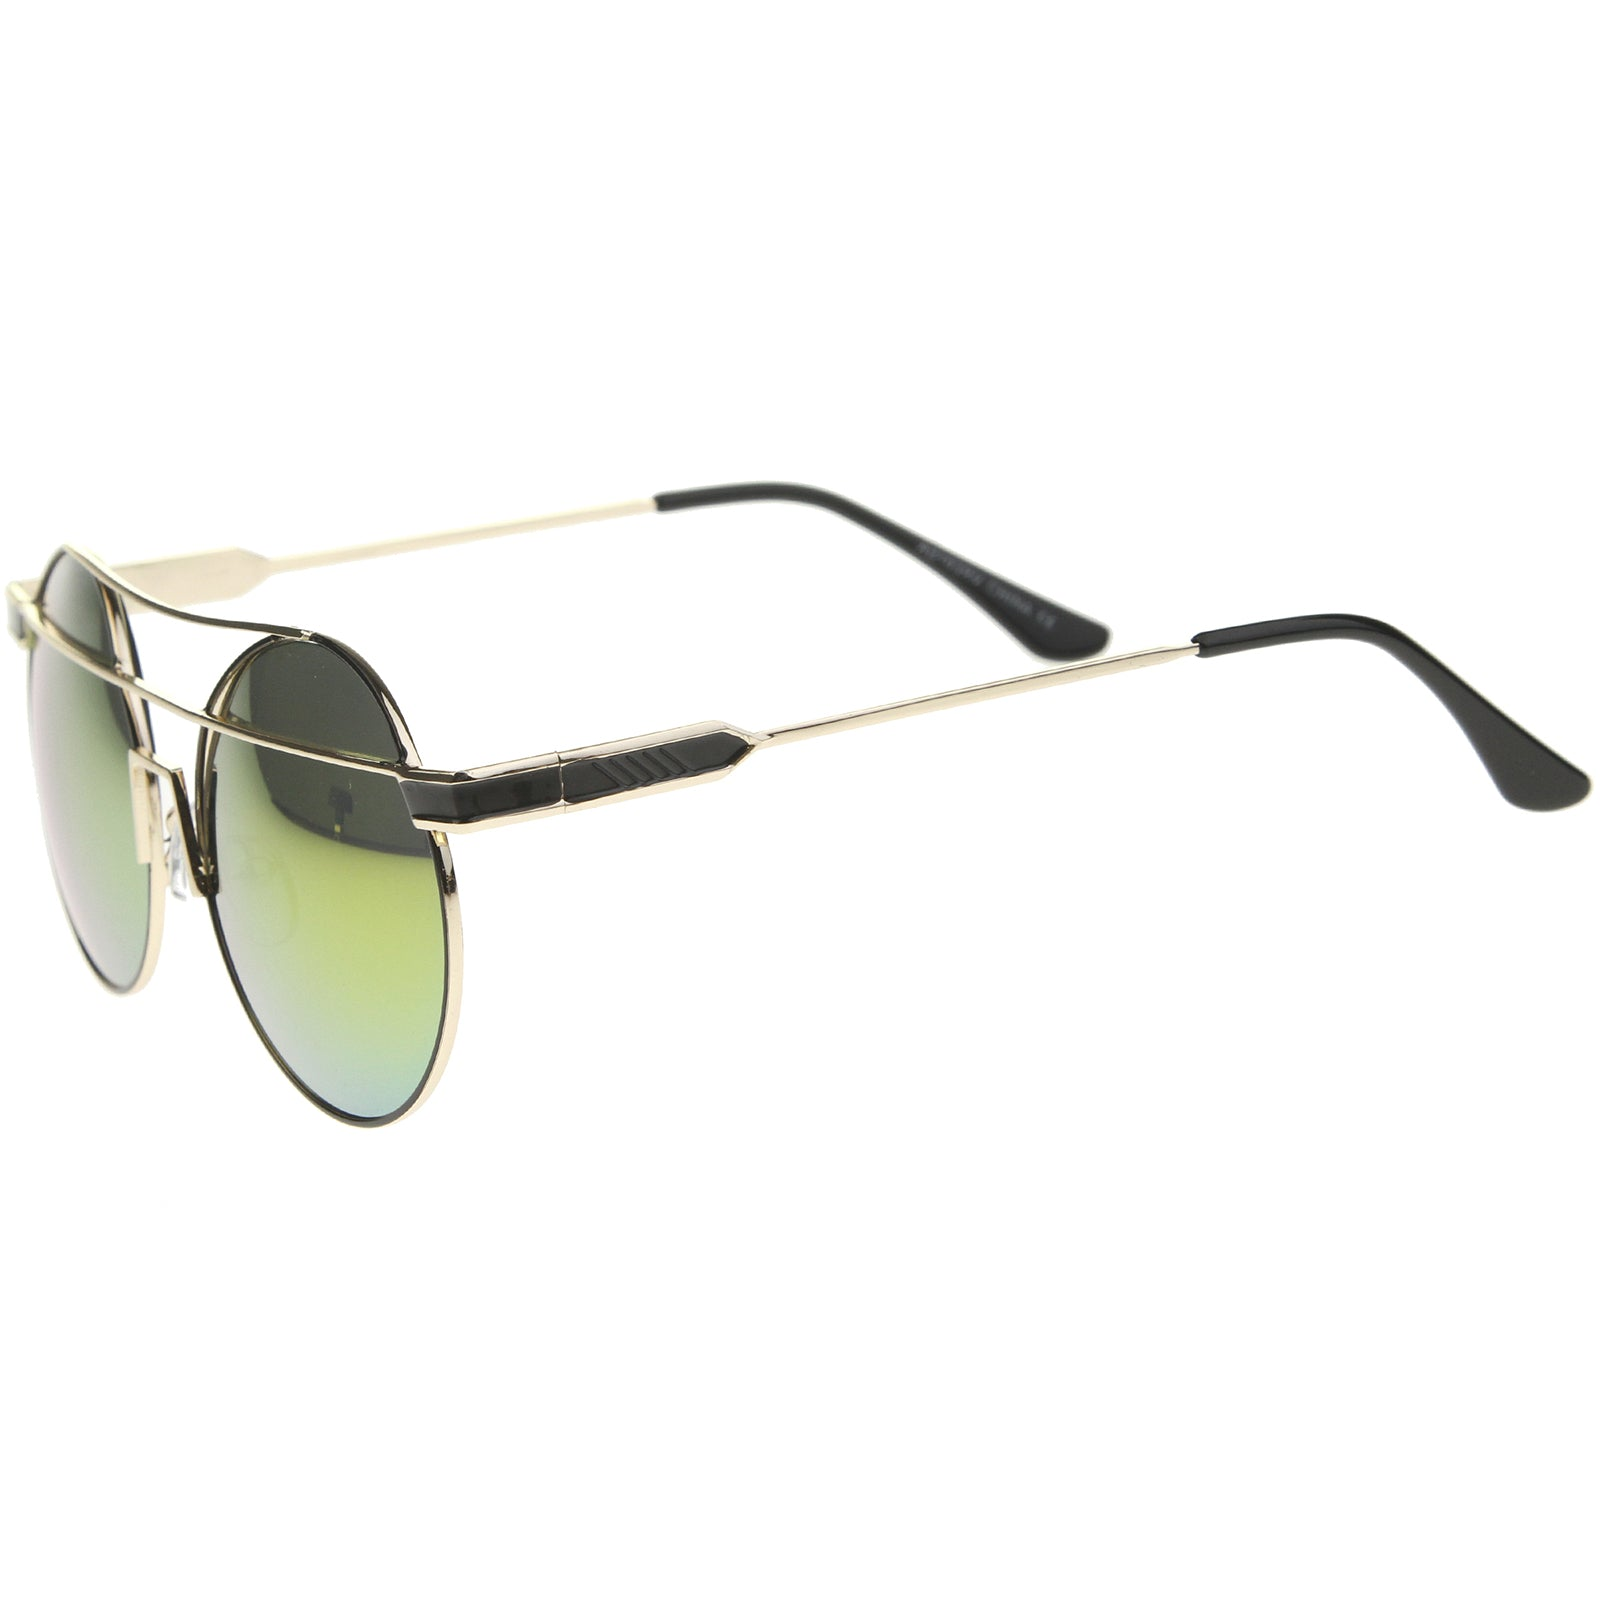 Modern Metal Frame Double Bridge Colored Mirror Lens Round Sunglasses 59mm - sunglass.la - 23